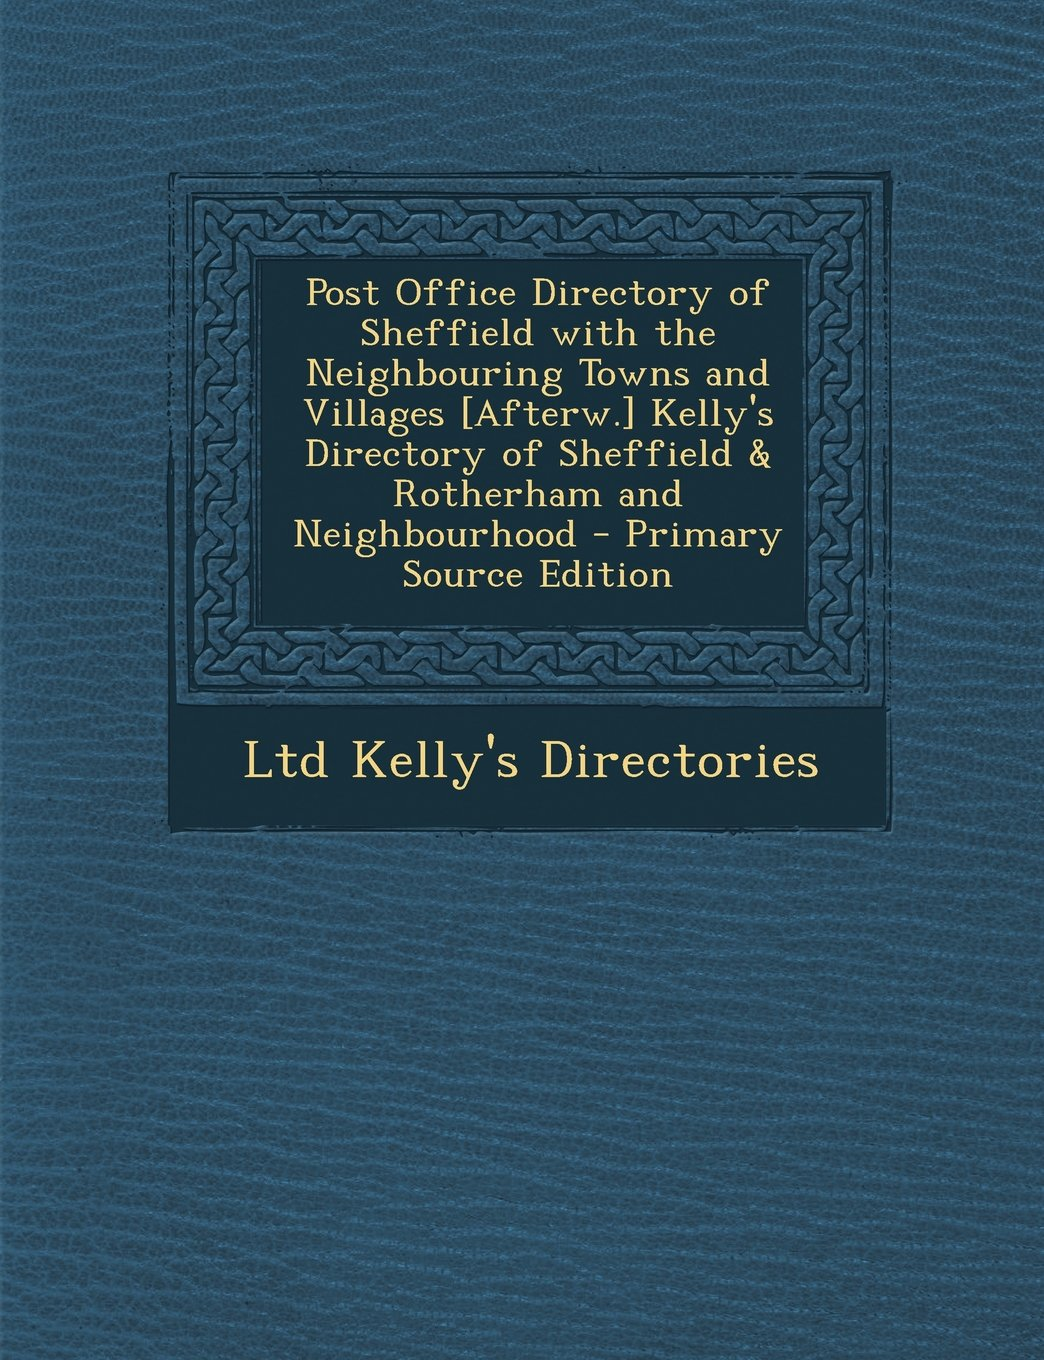 Download Post Office Directory of Sheffield with the Neighbouring Towns and Villages [Afterw.] Kelly's Directory of Sheffield & Rotherham and Neighbourhood (German Edition) PDF